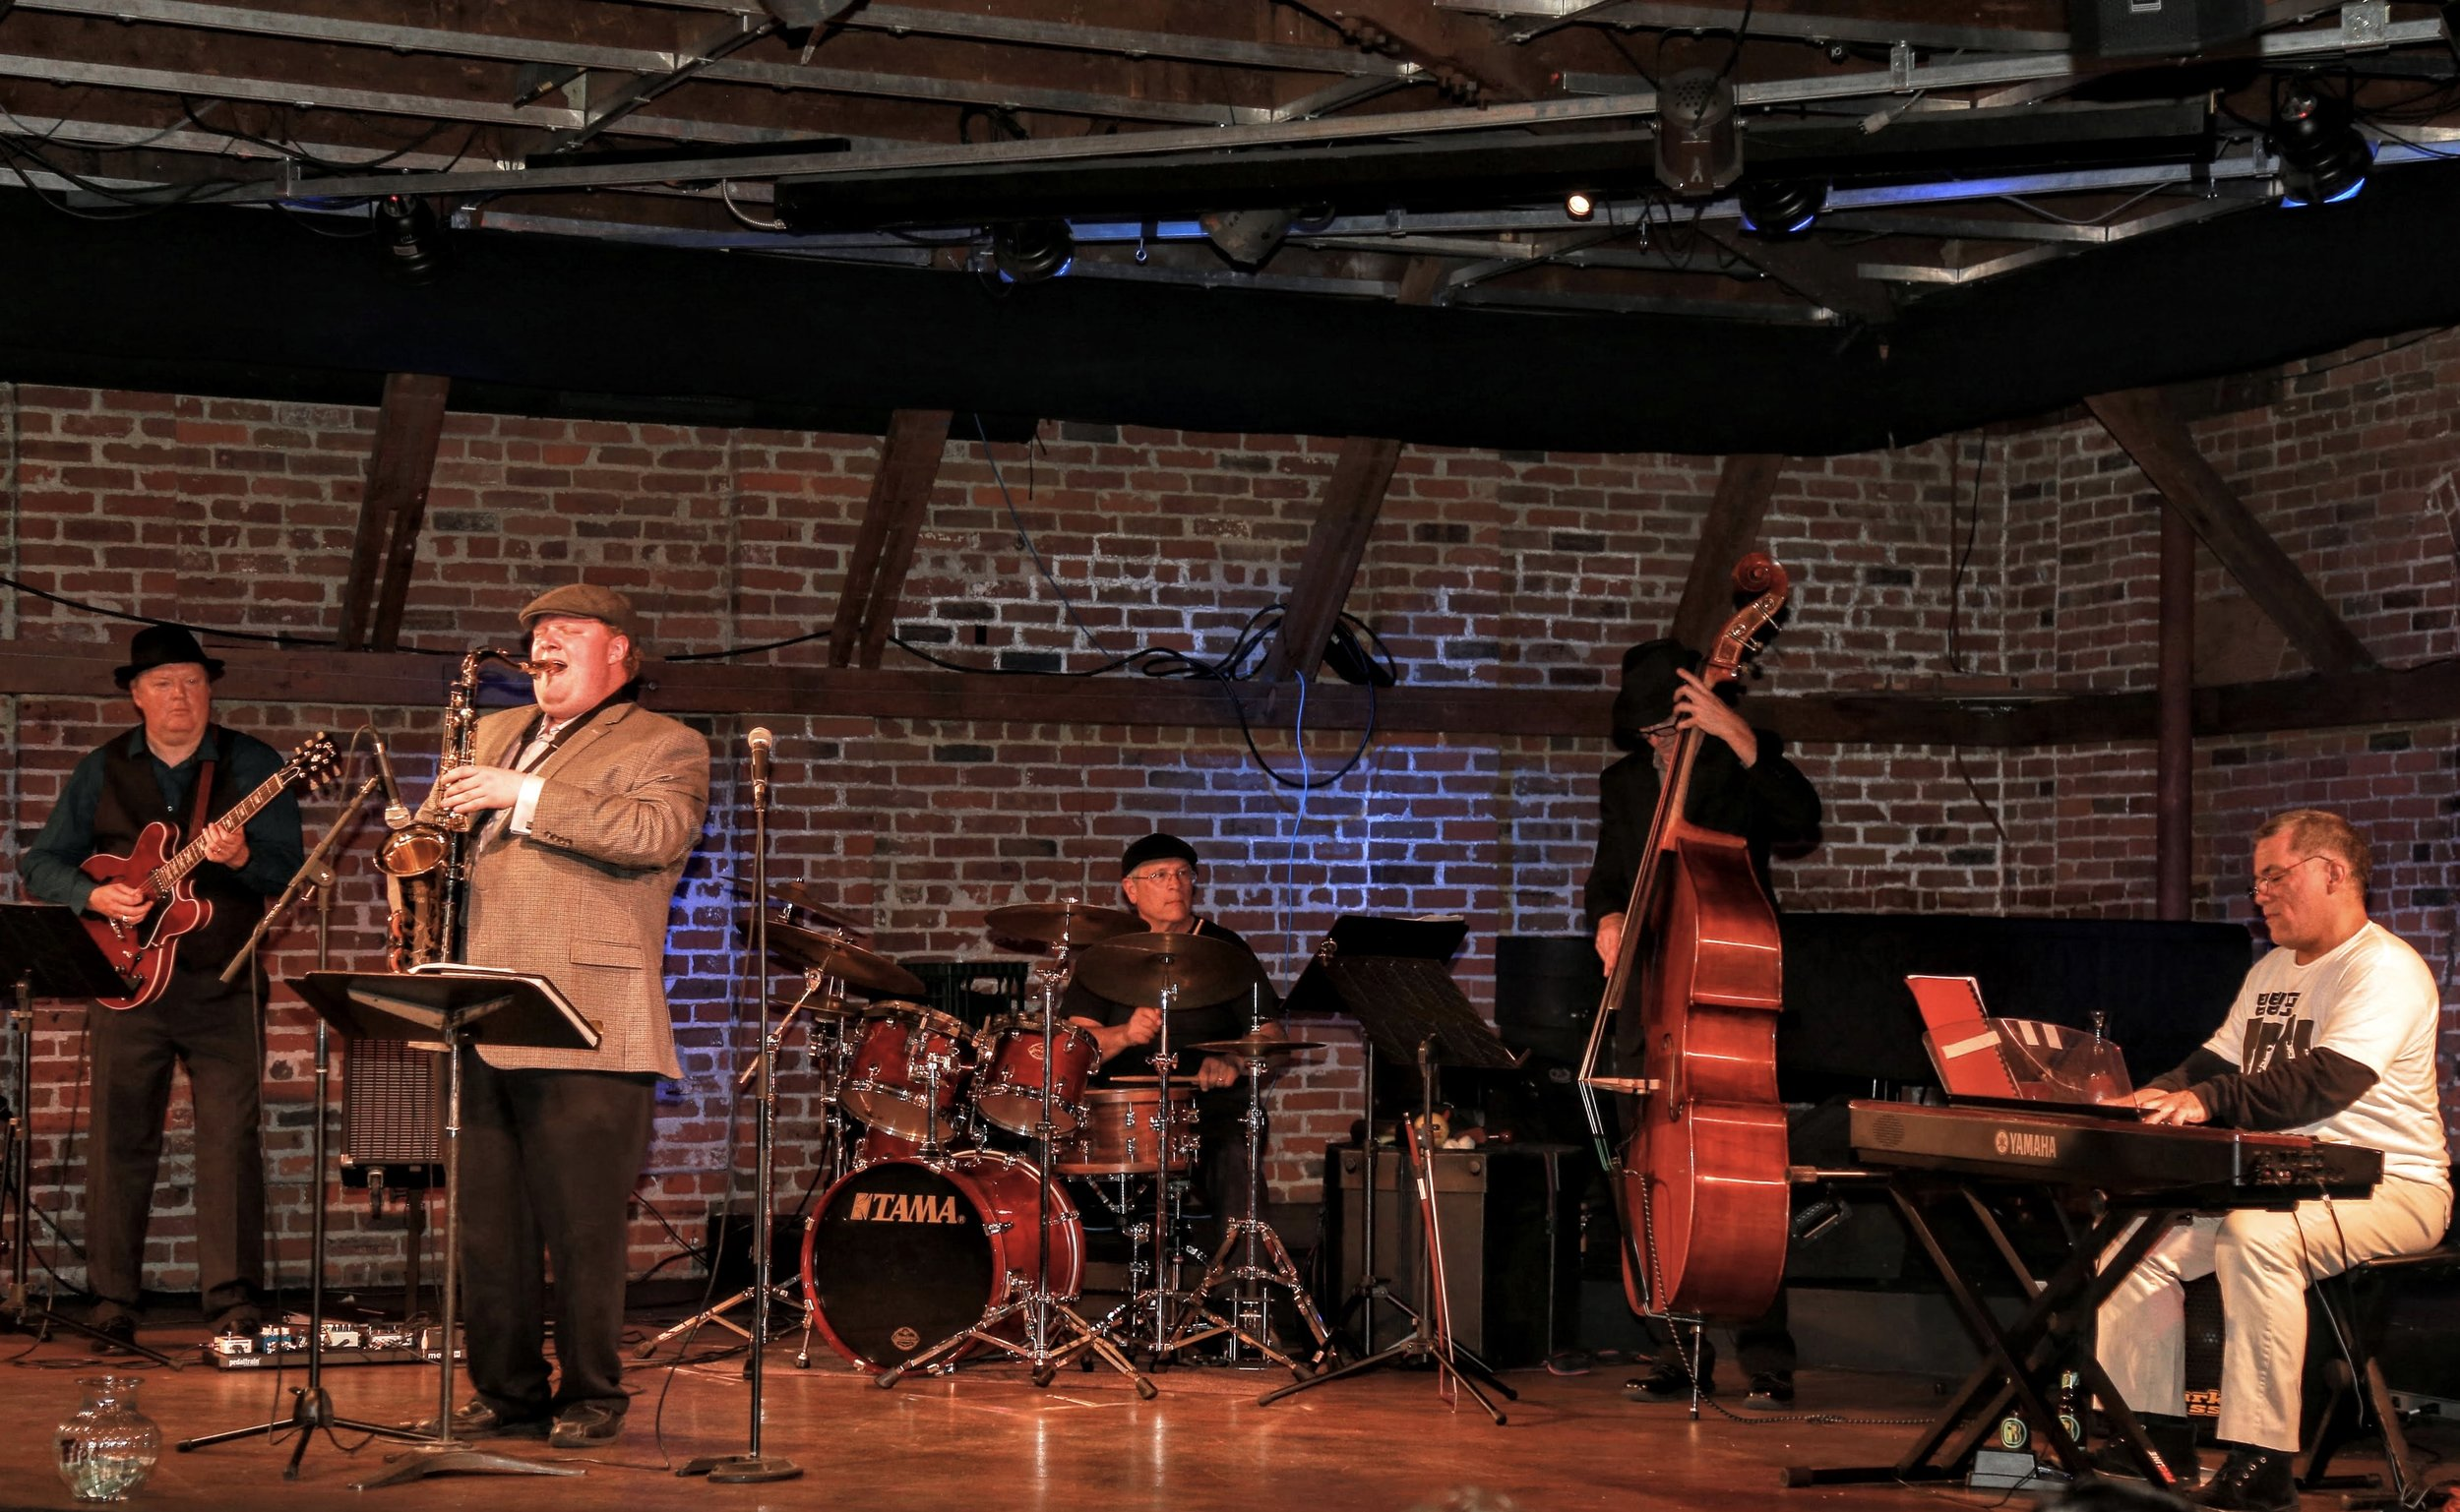 Local Jazz group 'Kings Five Jazz' is back with another night of great music!